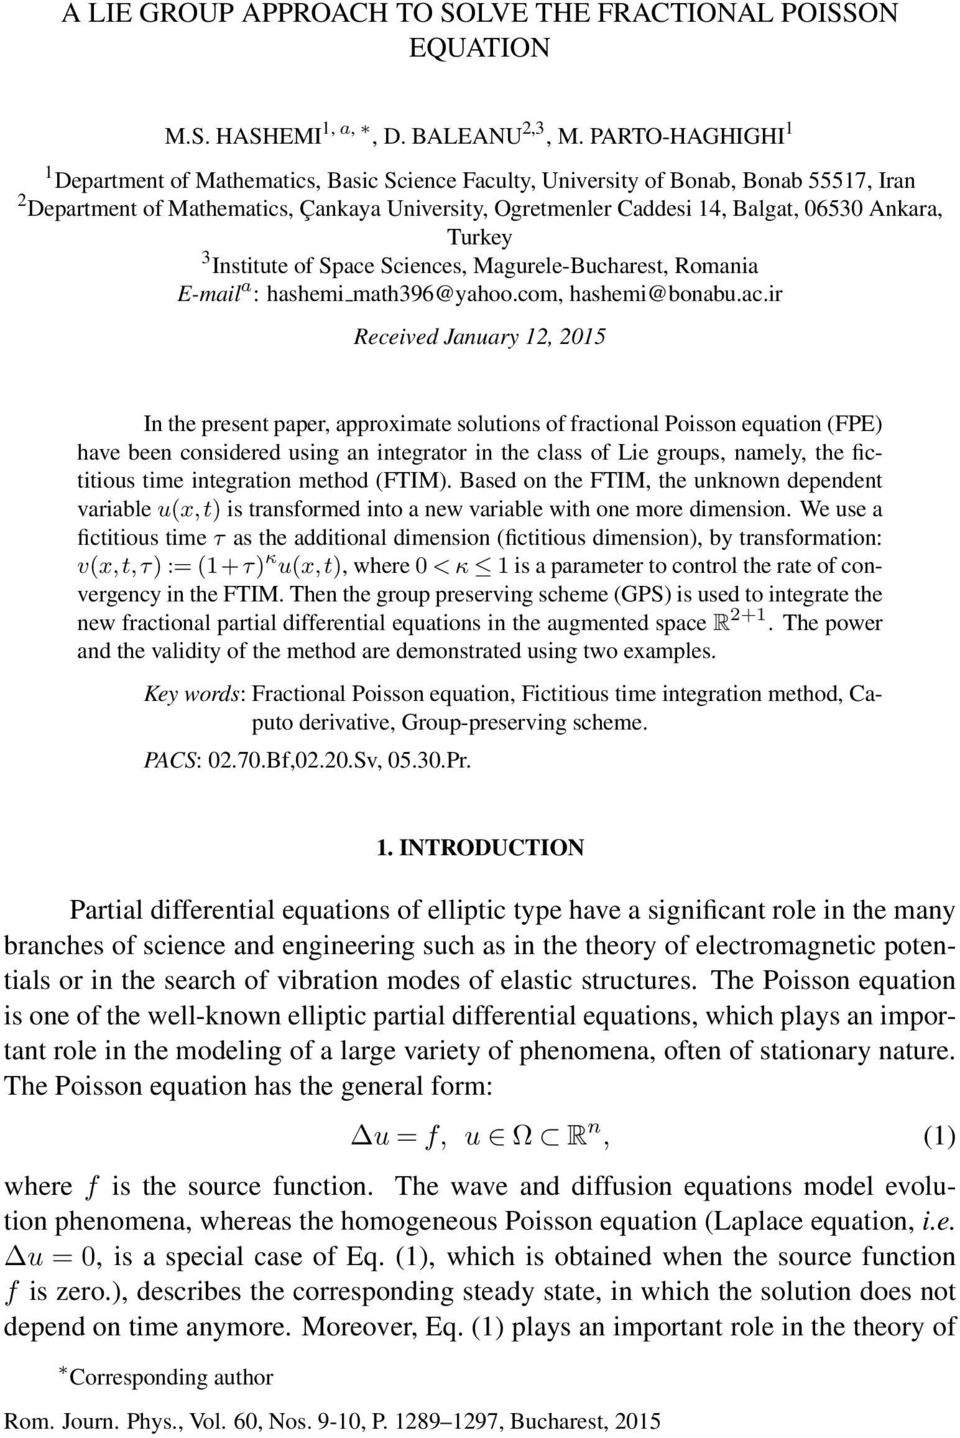 A LIE GROUP APPROACH TO SOLVE THE FRACTIONAL POISSON